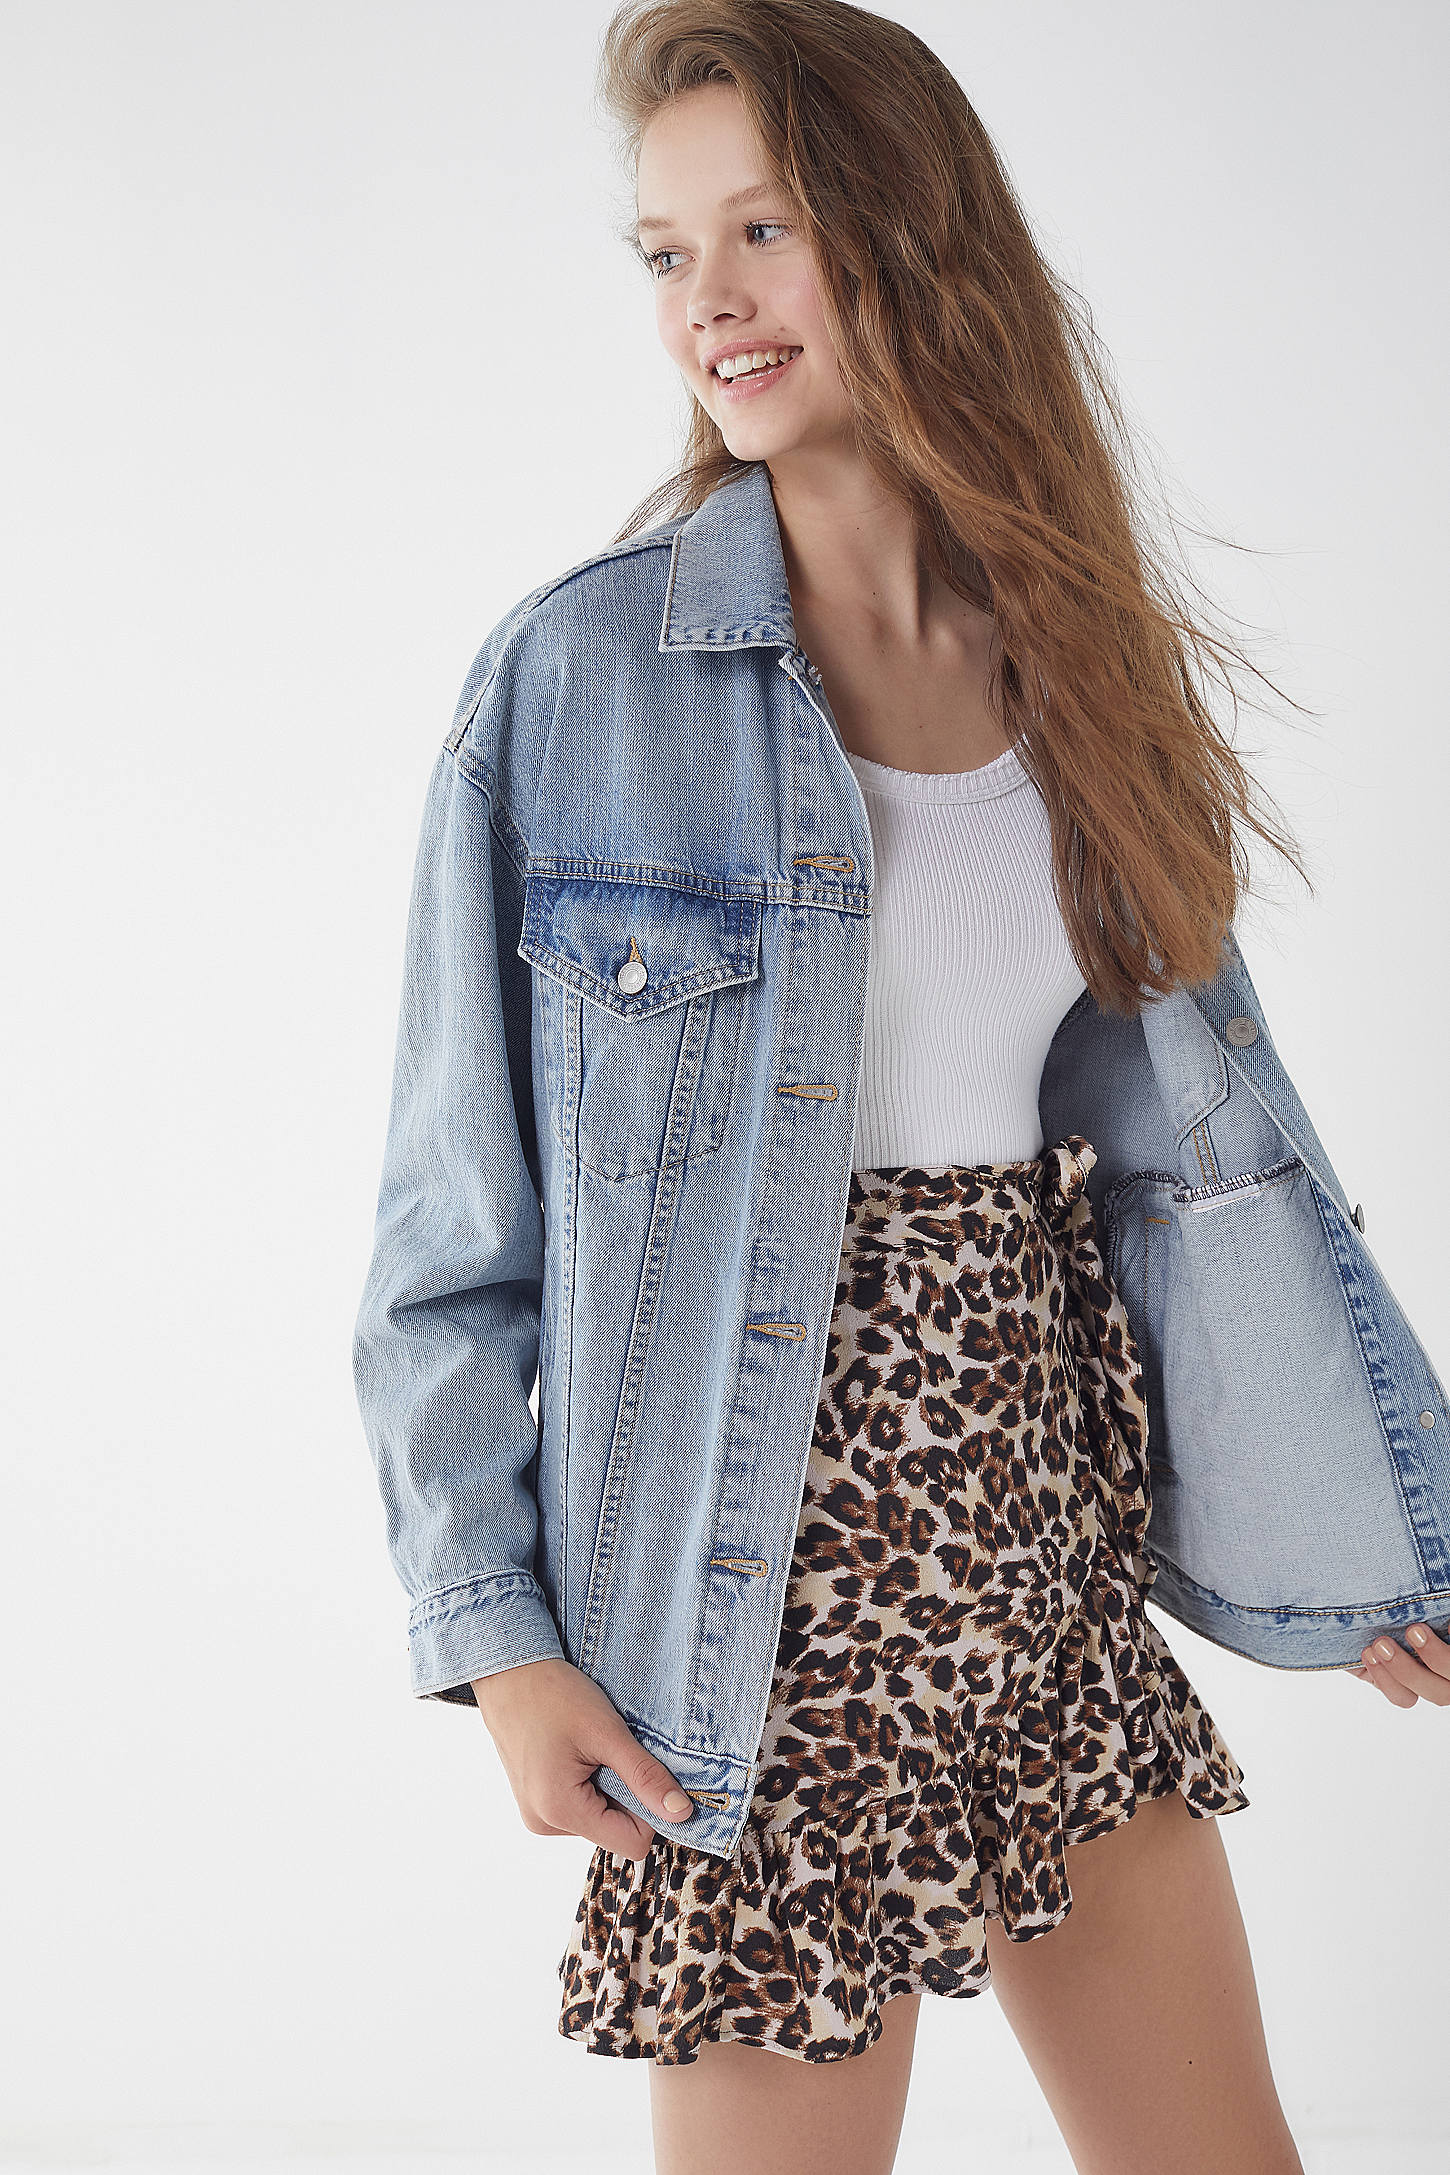 Urban Outfitters BDG '80s Trucker Jacket     – $49.90